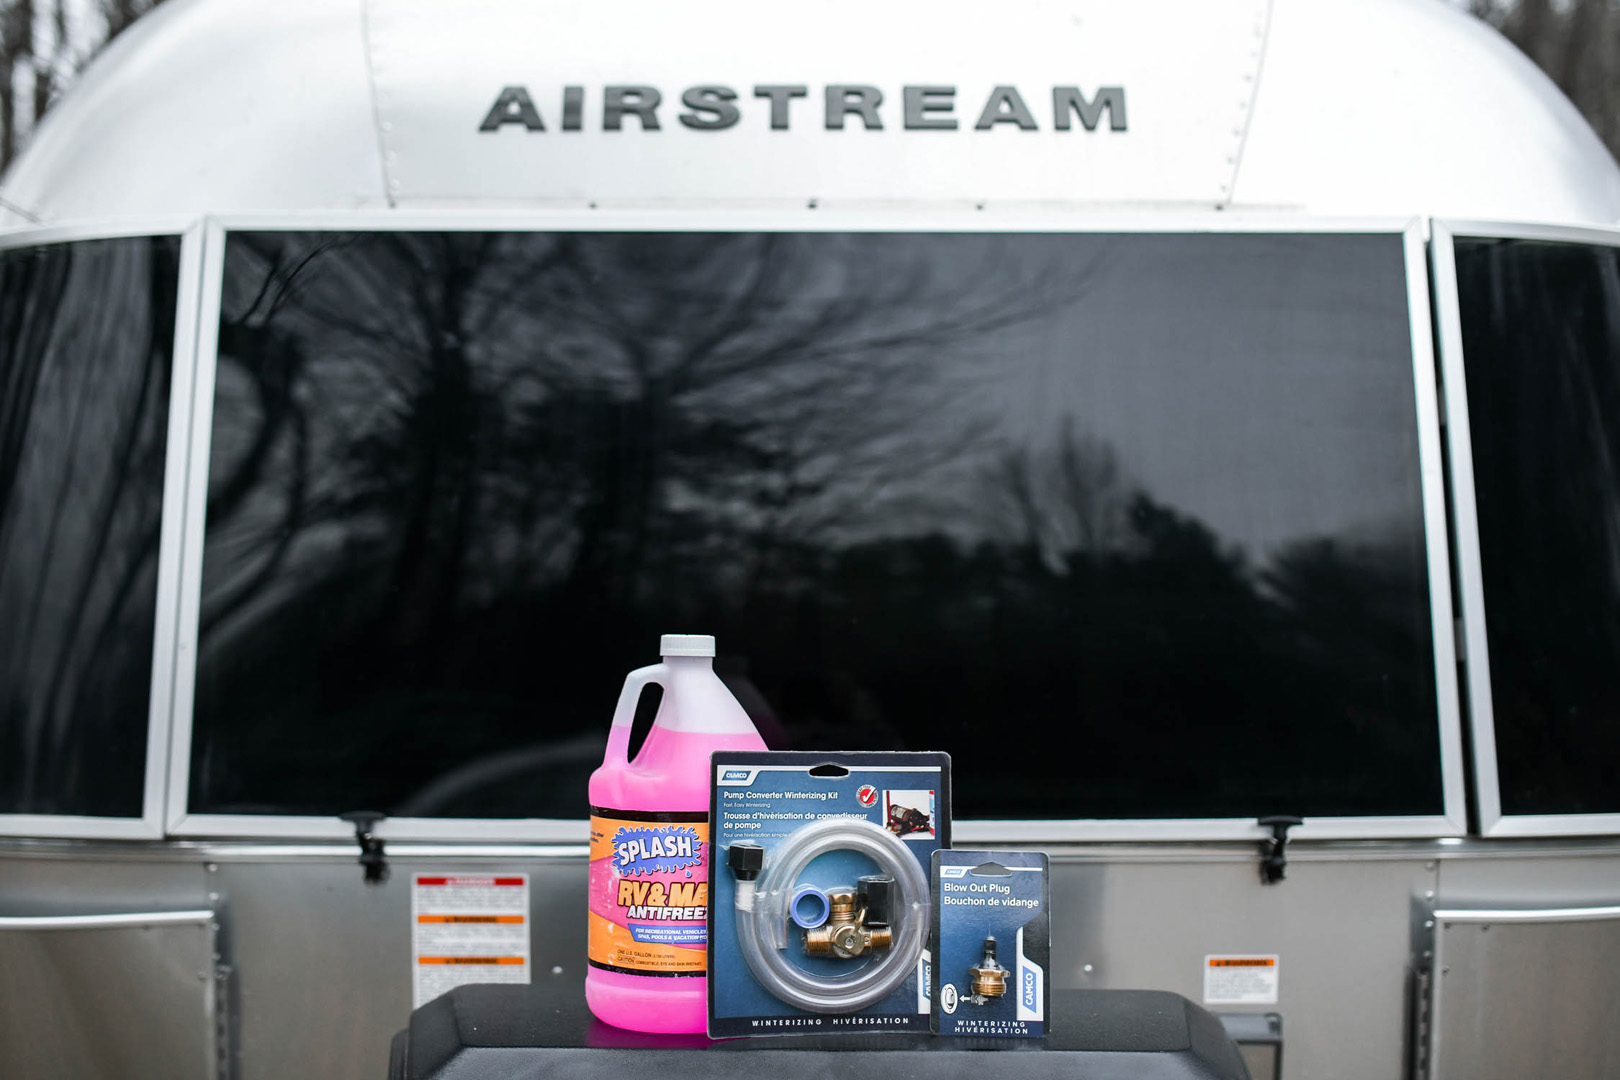 Airstream Winterization Guide Supplies Kit